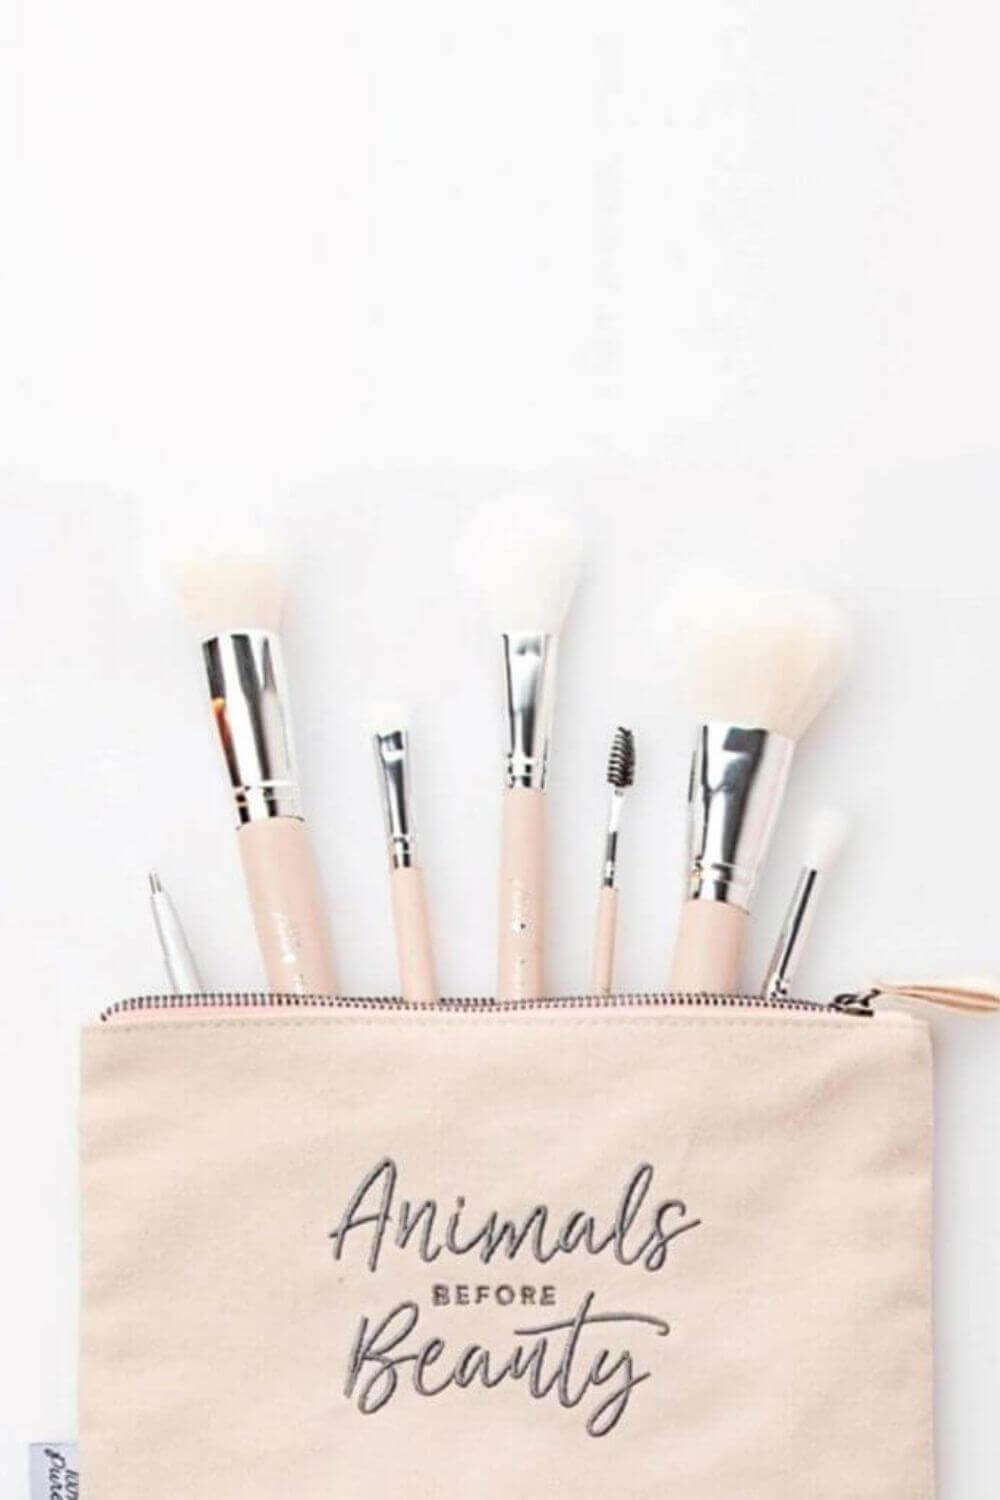 We've sought out the best cruelty free vegan makeup brushes to give you the tools (literally) to make your ENTIRE makeup routine absent the animals. Image by 100% Pure #veganmakeupbrushes #sustainablejungle